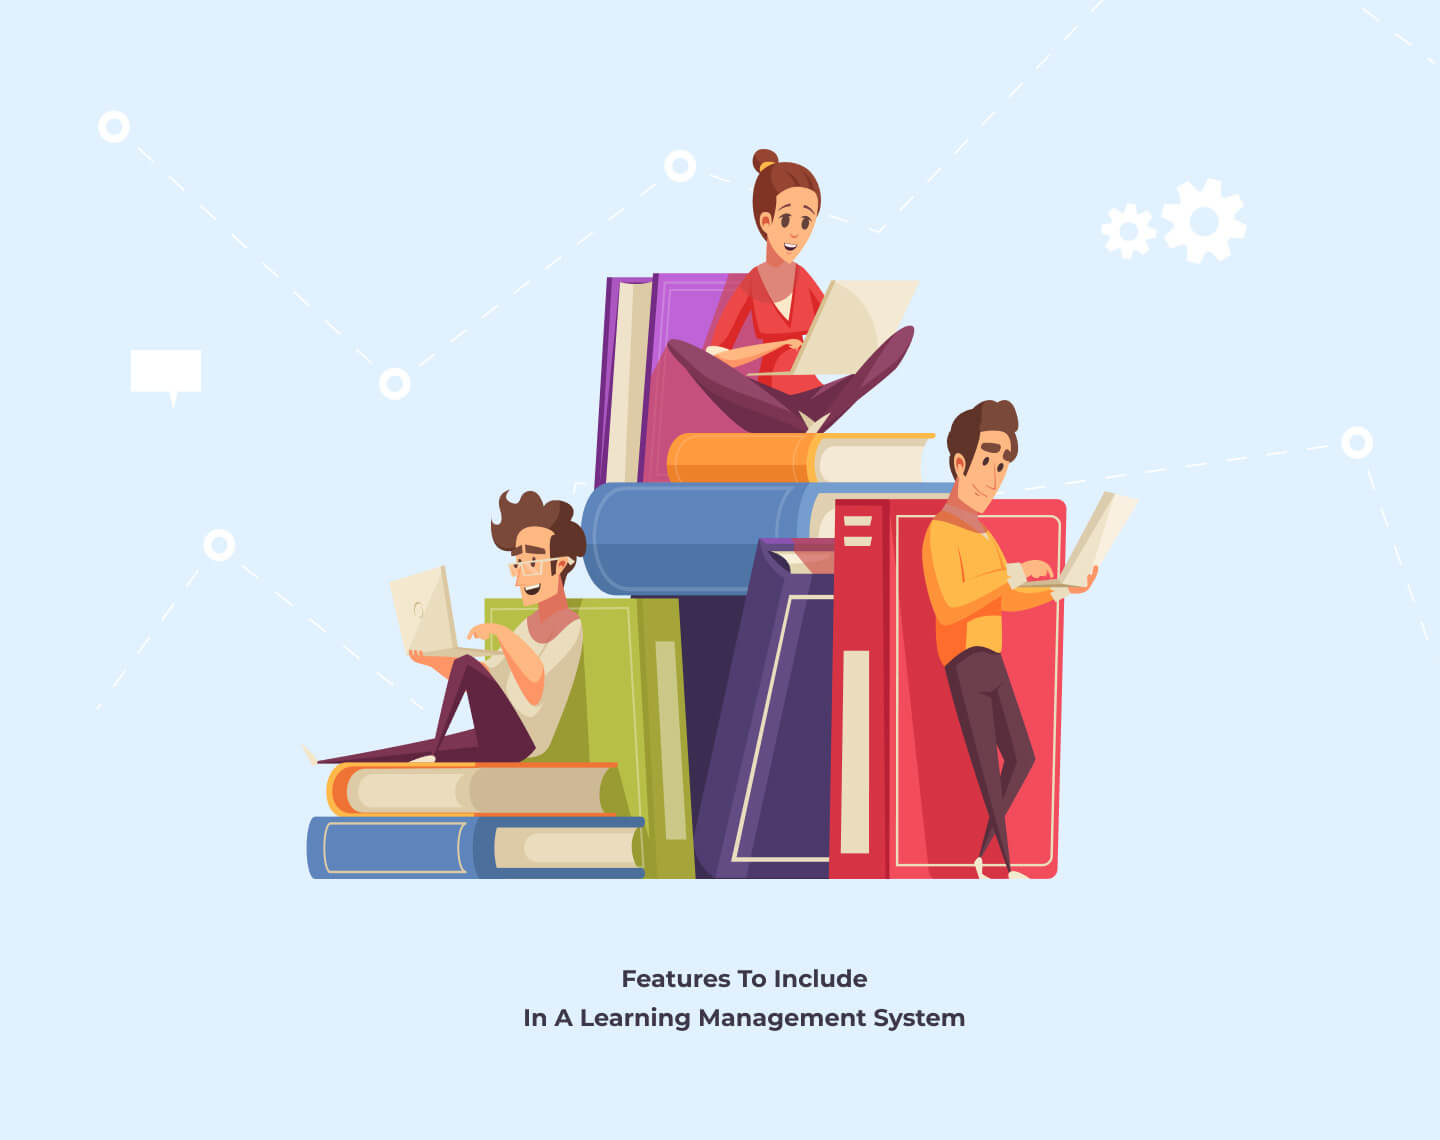 Features to include in a learning management system